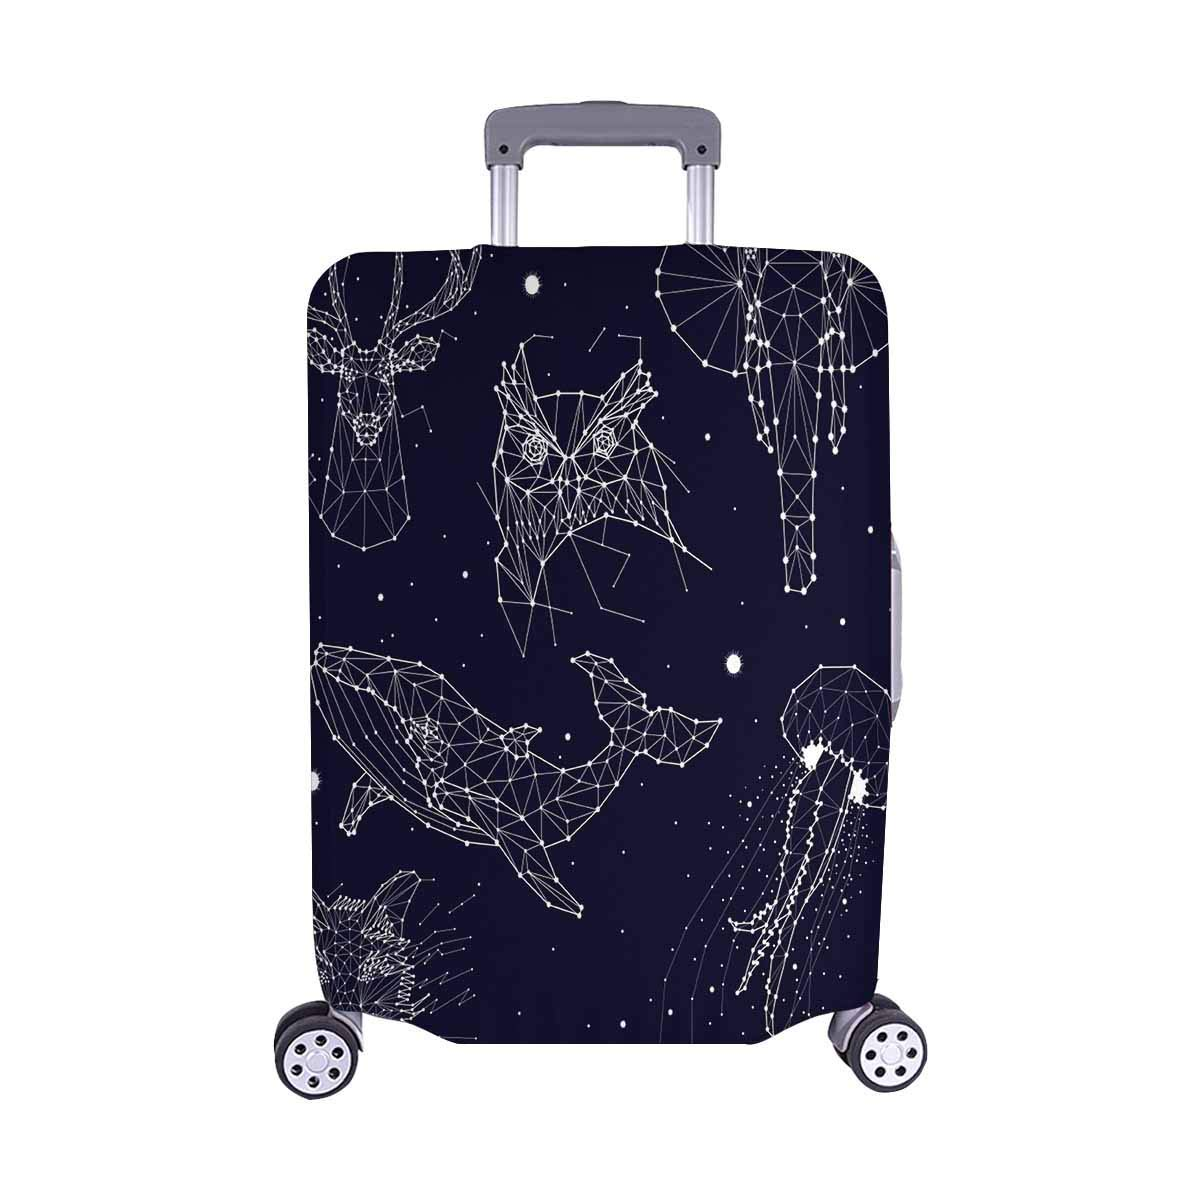 LAVOVO Cute Floral Owls Luggage Cover Suitcase Protector Carry On Covers